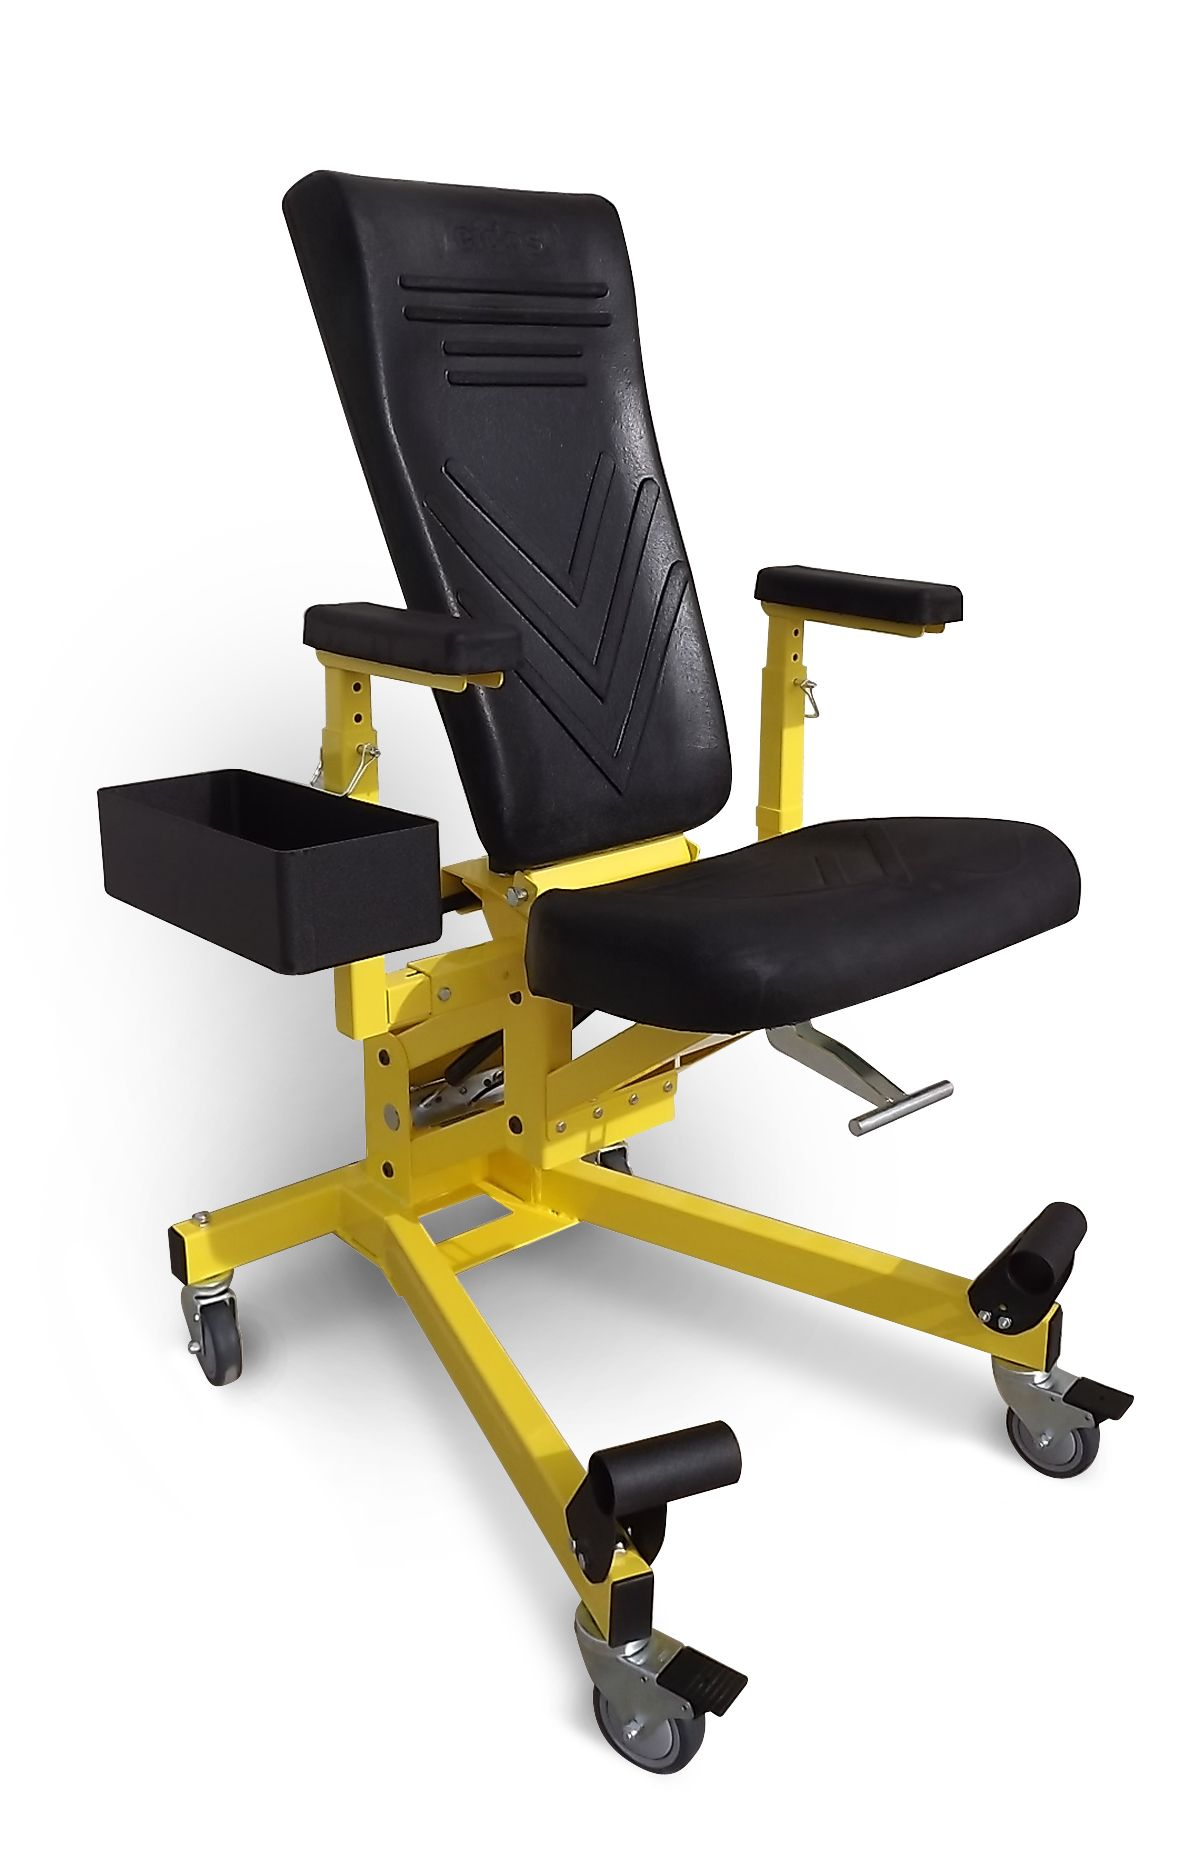 ergonomic work chair bedroom types eidos model 117 gsw is an fully adjustable positioner